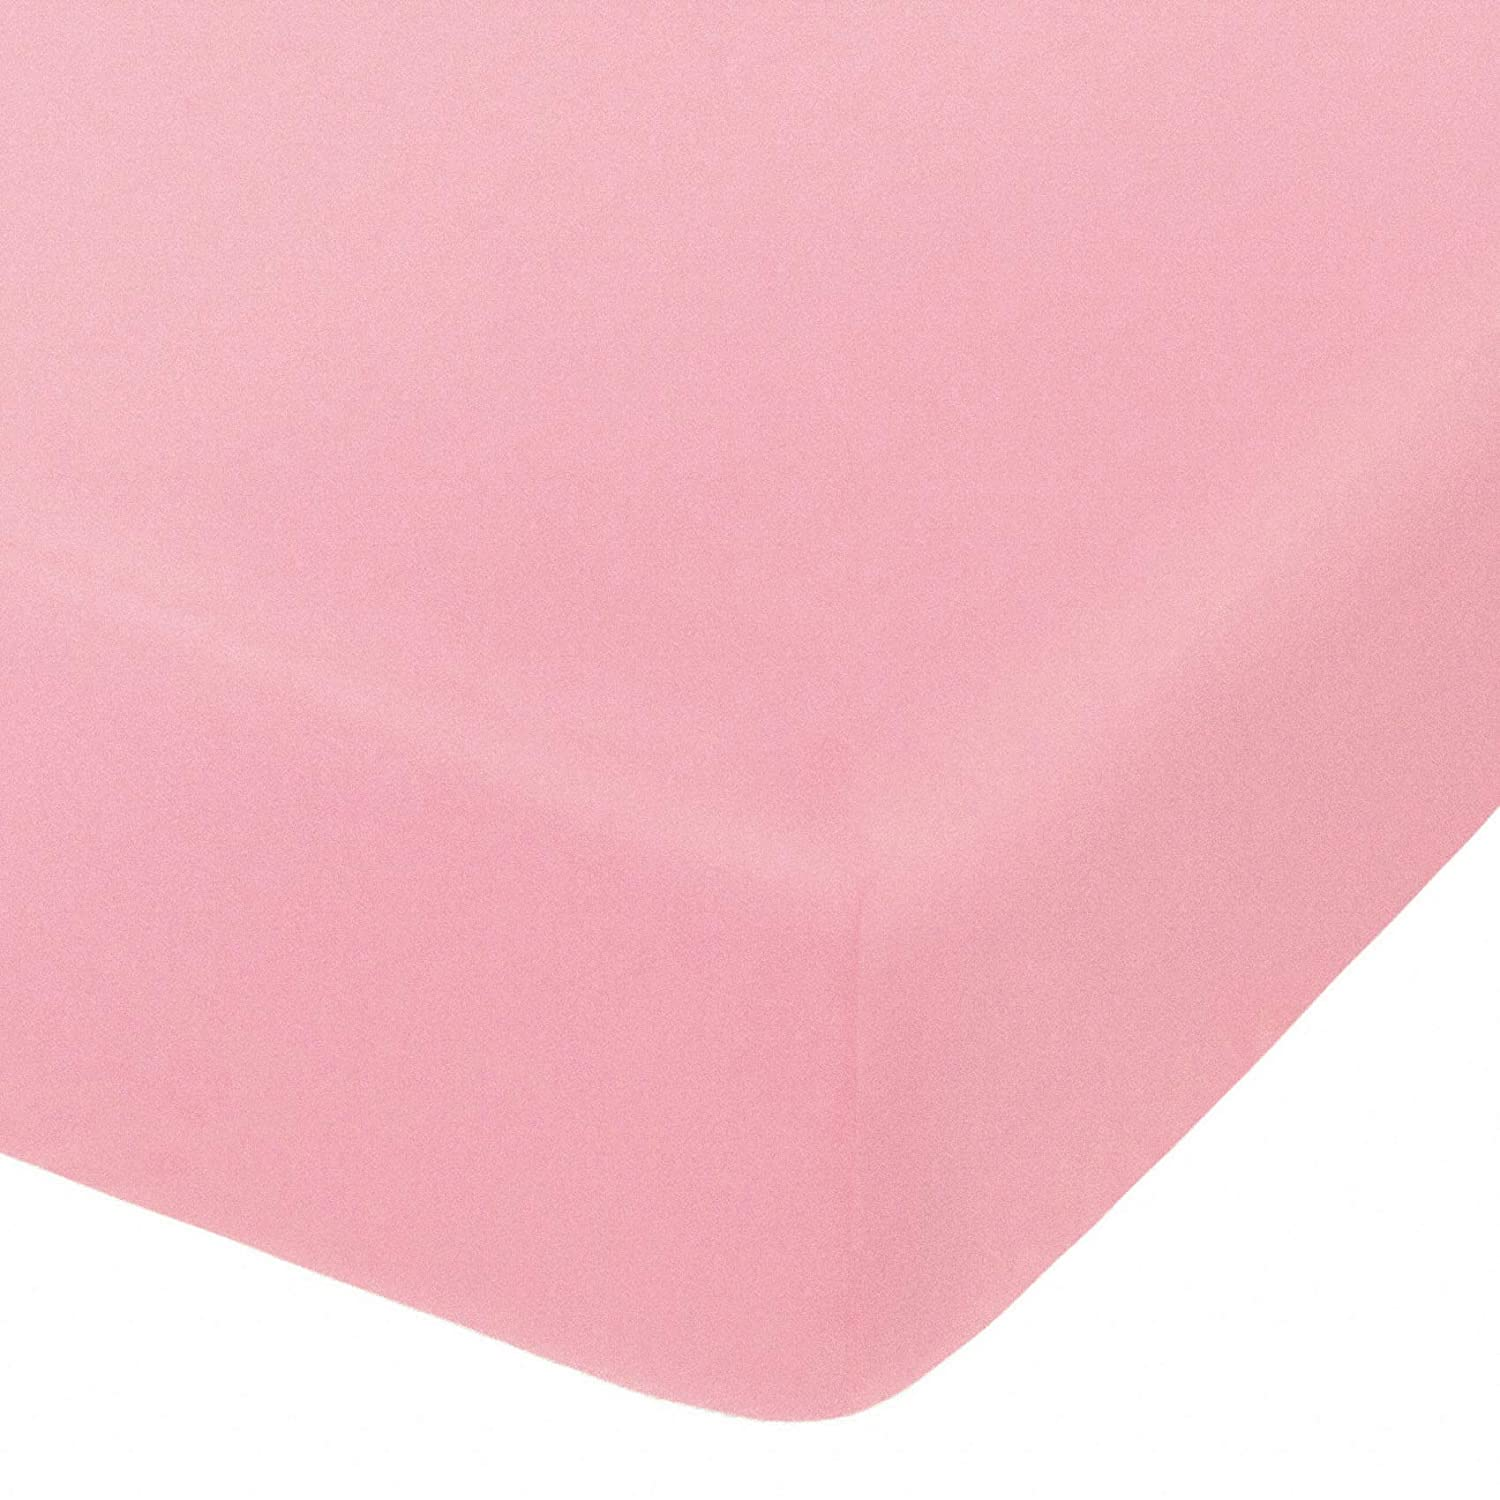 NTBAY Microfiber Fitted Crib Sheet, Cozy and Soft Solid Color Toddler Sheet, 28 x 52 Inches, Pink